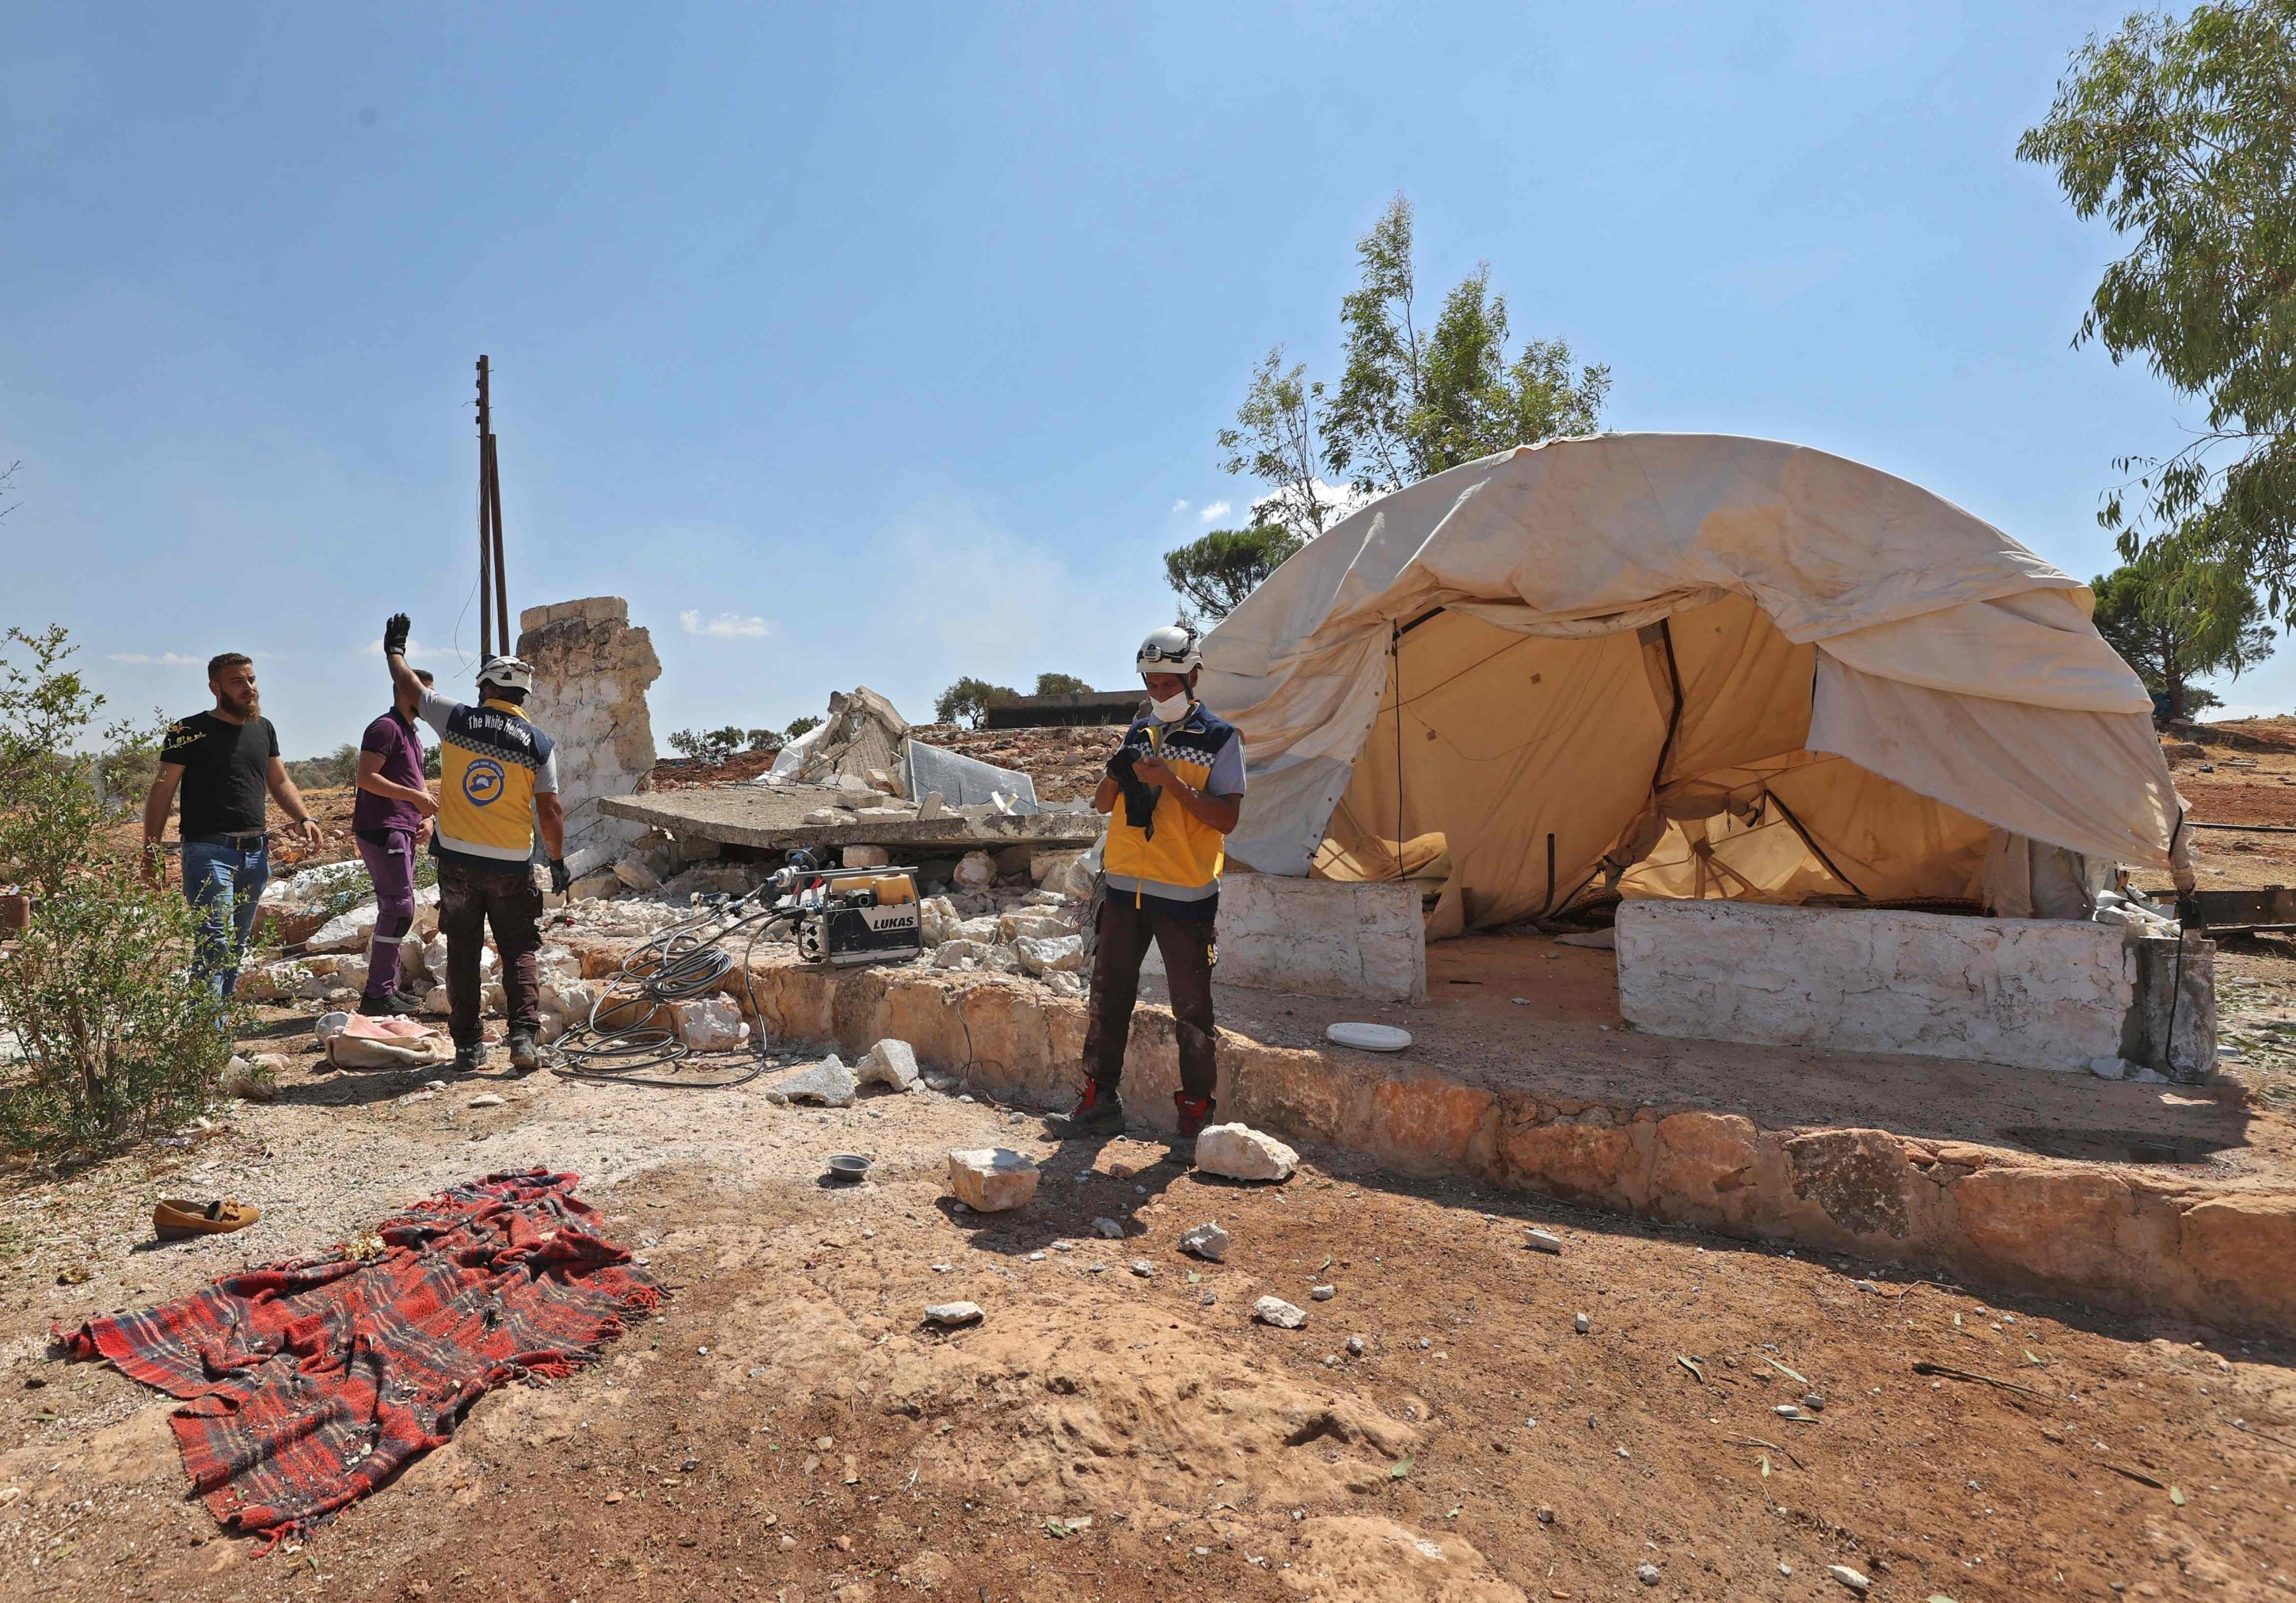 Members of White Helmets gather by a collapsed building at a tent in the aftermath of aerial bombardment at a makeshift camp for displaced Syrians near the town of Kafraya in the north of rebel-held Idlib province, Syria, Sept. 7, 2021. (AFP Photo)